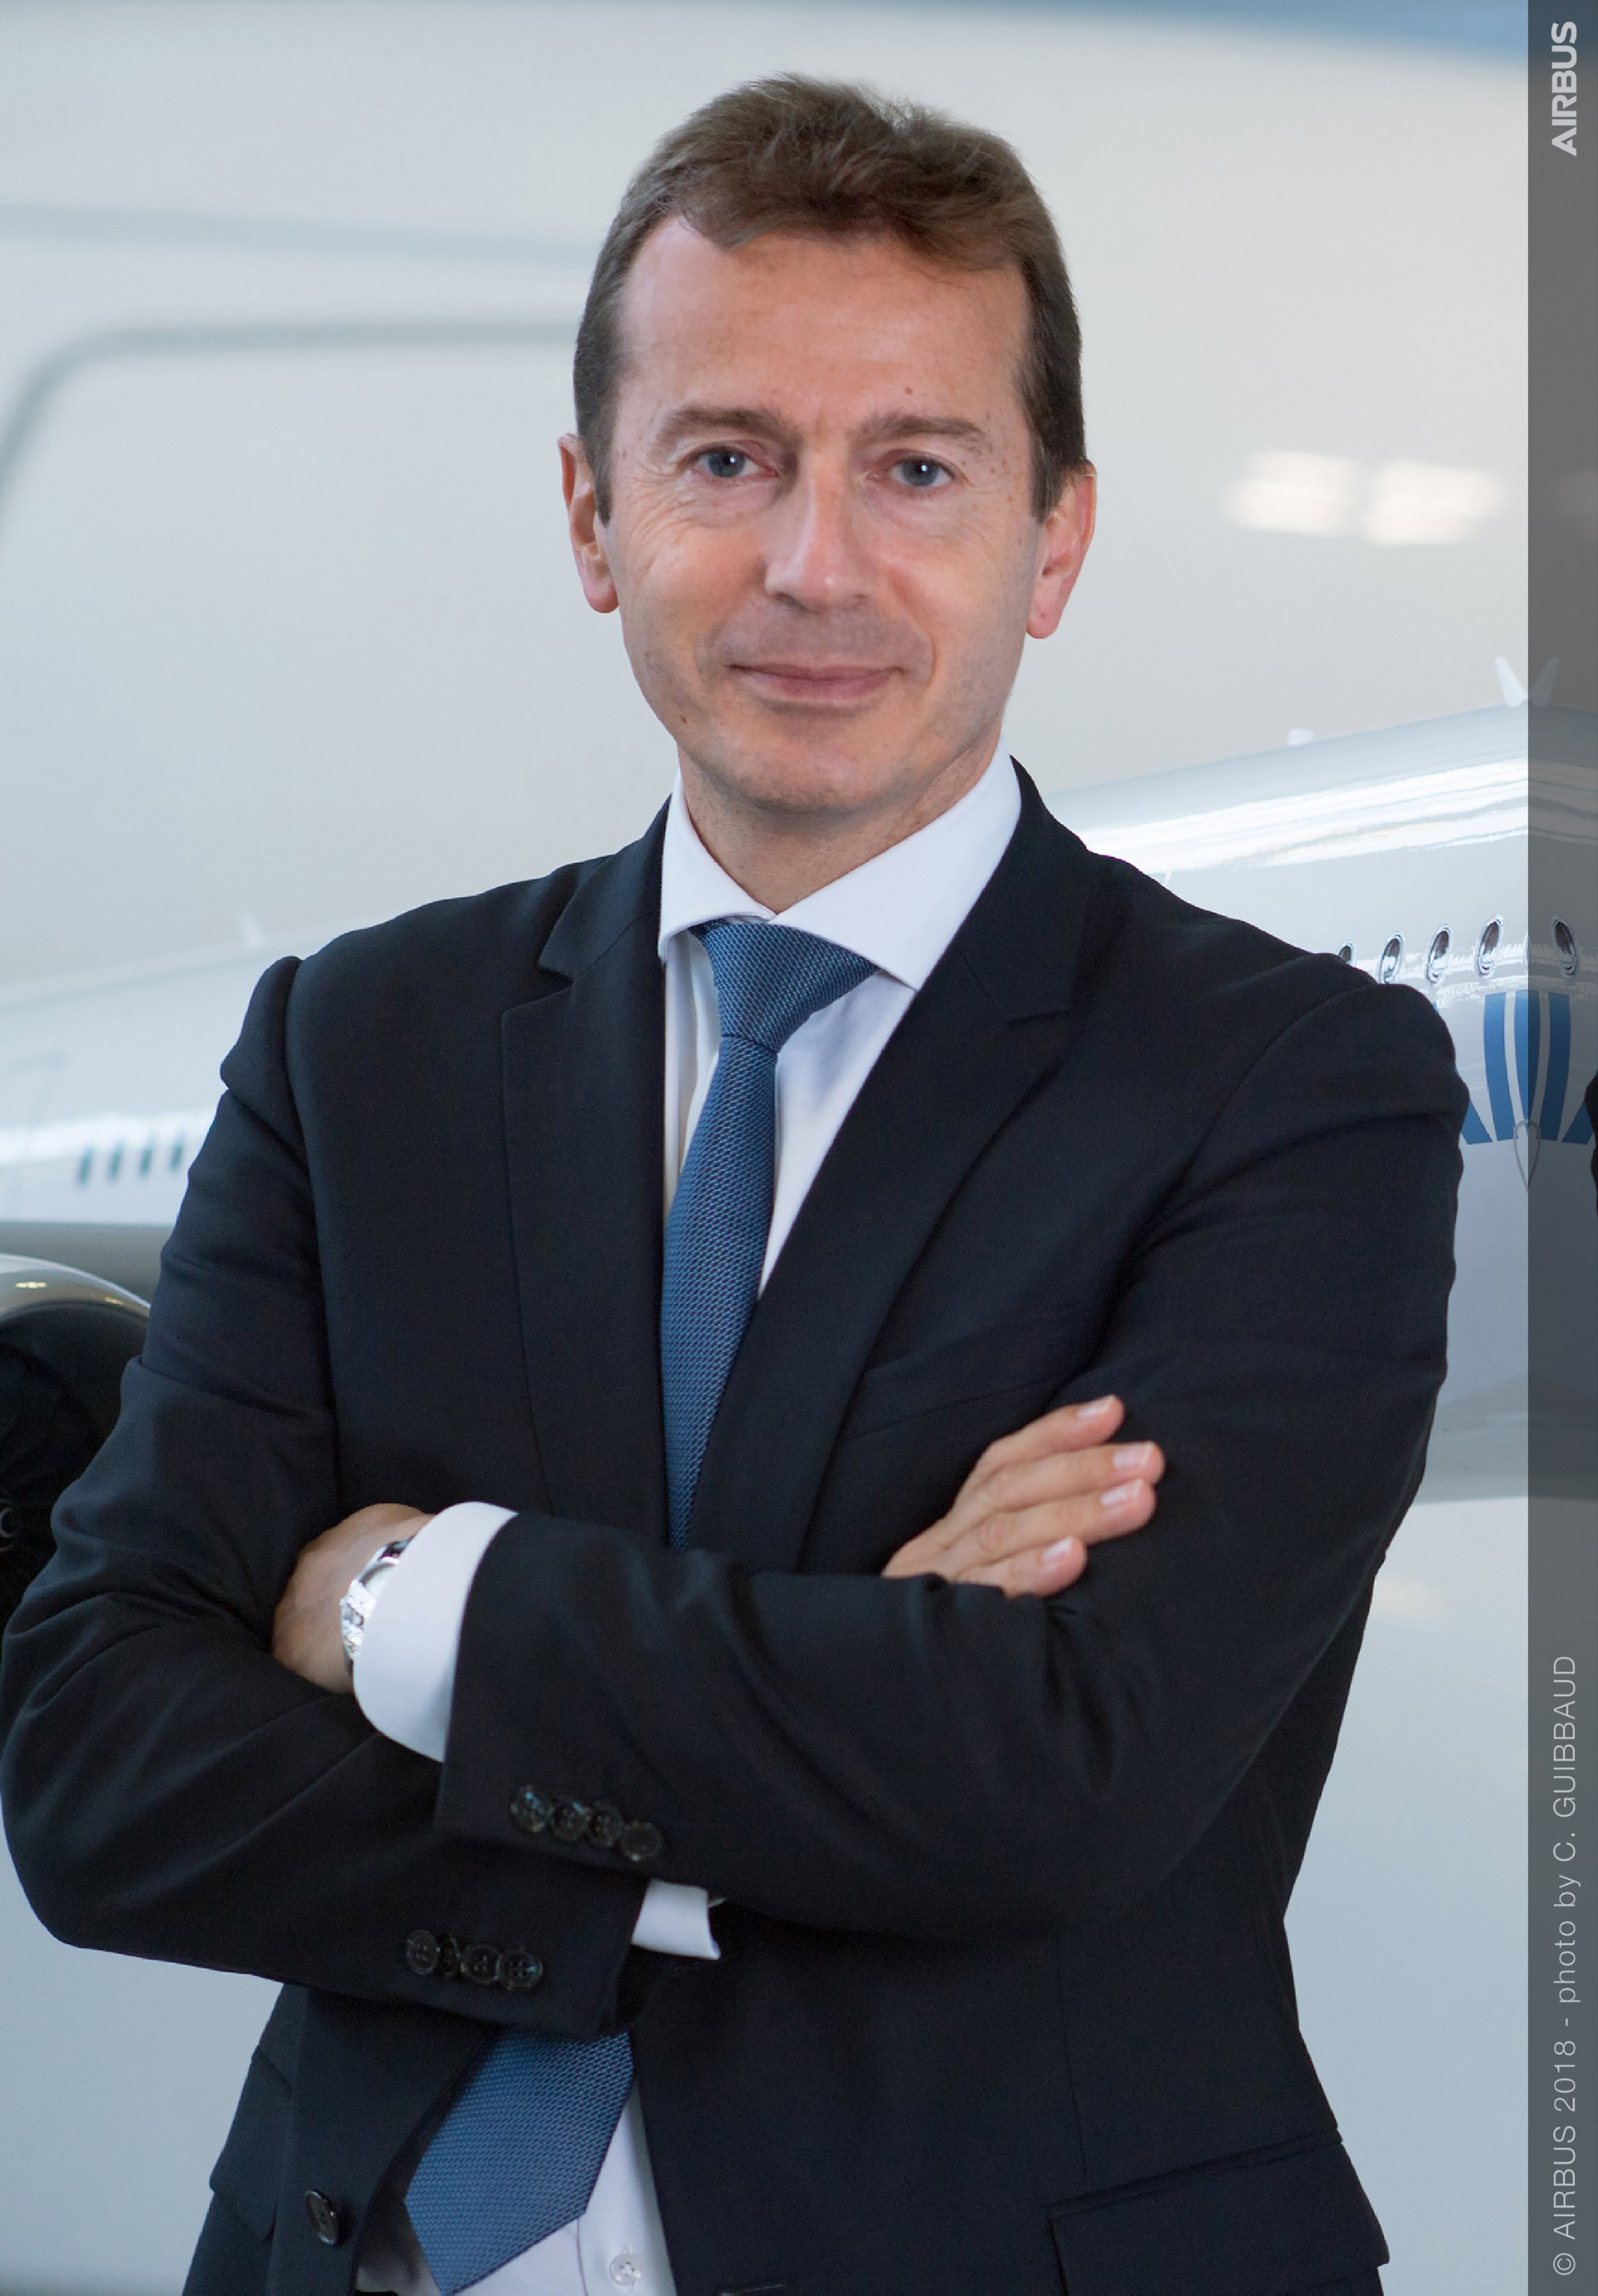 Chief Executive Officer Airbus